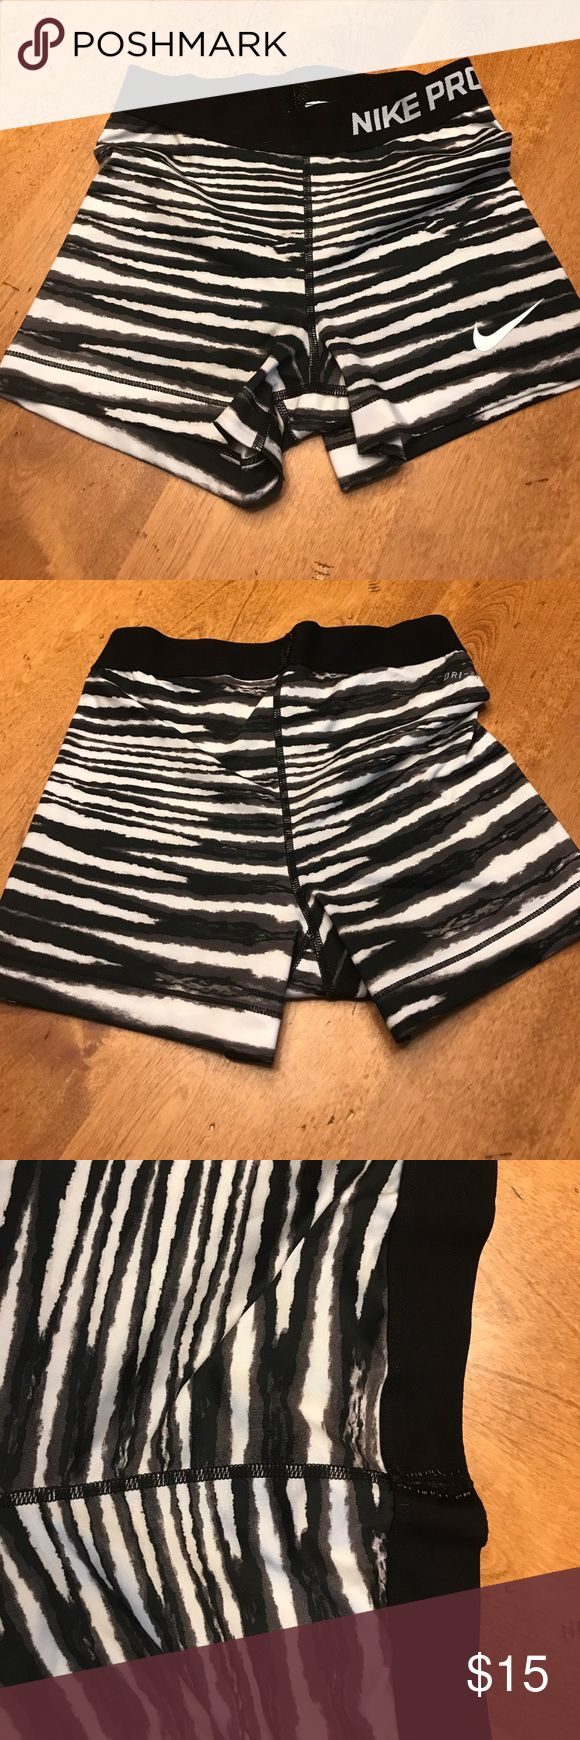 Nike spandex shorts Perfect condition Nike spandex running shorts. Bought for one race for a team event, worn once. Zebra type print. Although they're white, not see through at all 👍🏻 do not rise up Nike Shorts